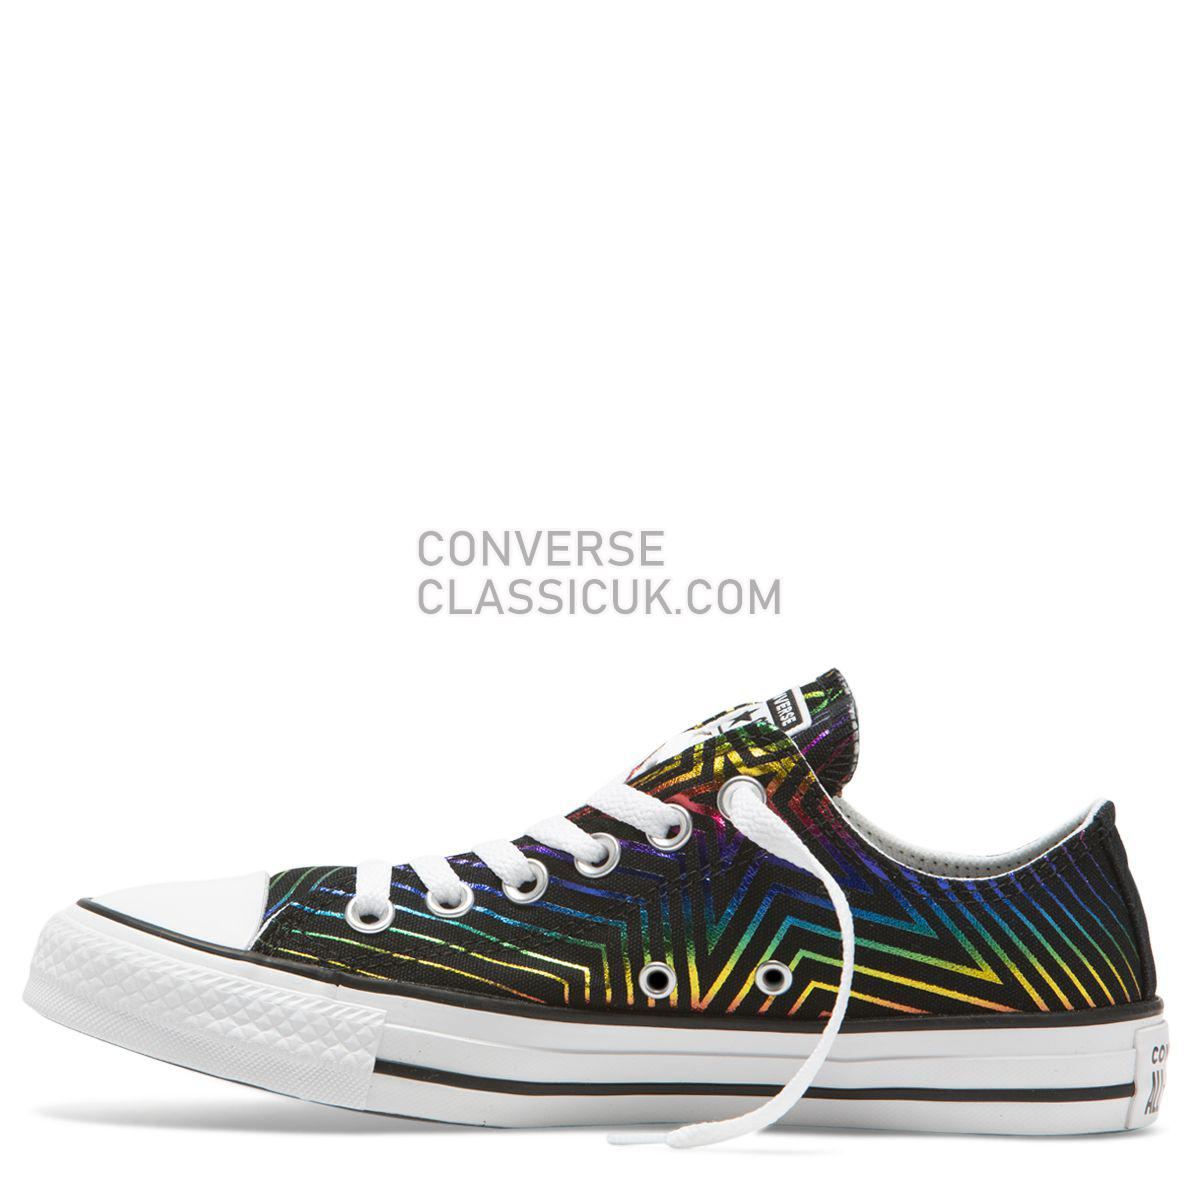 Converse Chuck Taylor All Star All Of The Stars Low Top Black Womens 565439 Black/White/Black Shoes